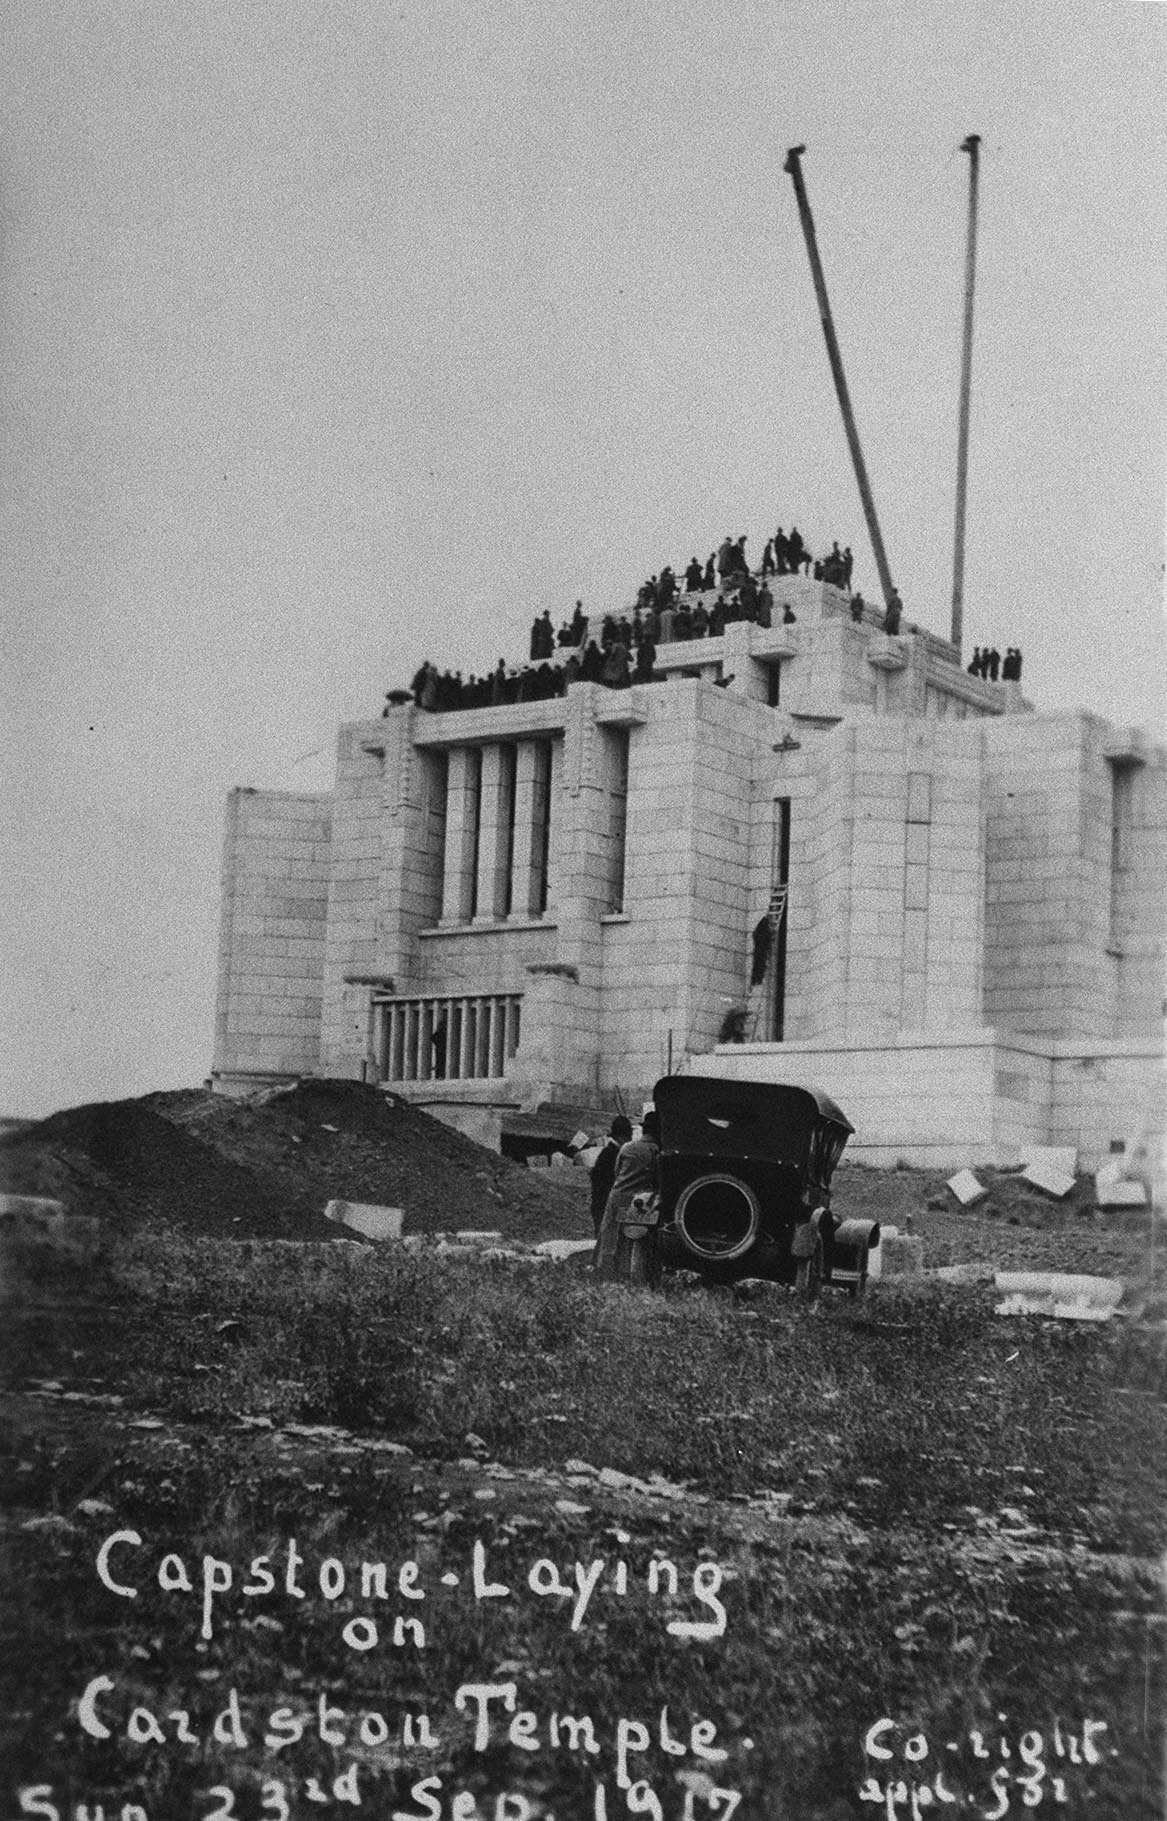 Capstone laying of Cardston Temple, Alberta, Canada. The capstone of the Alberta Temple in Cardston was placed Sept. 23, 1917.